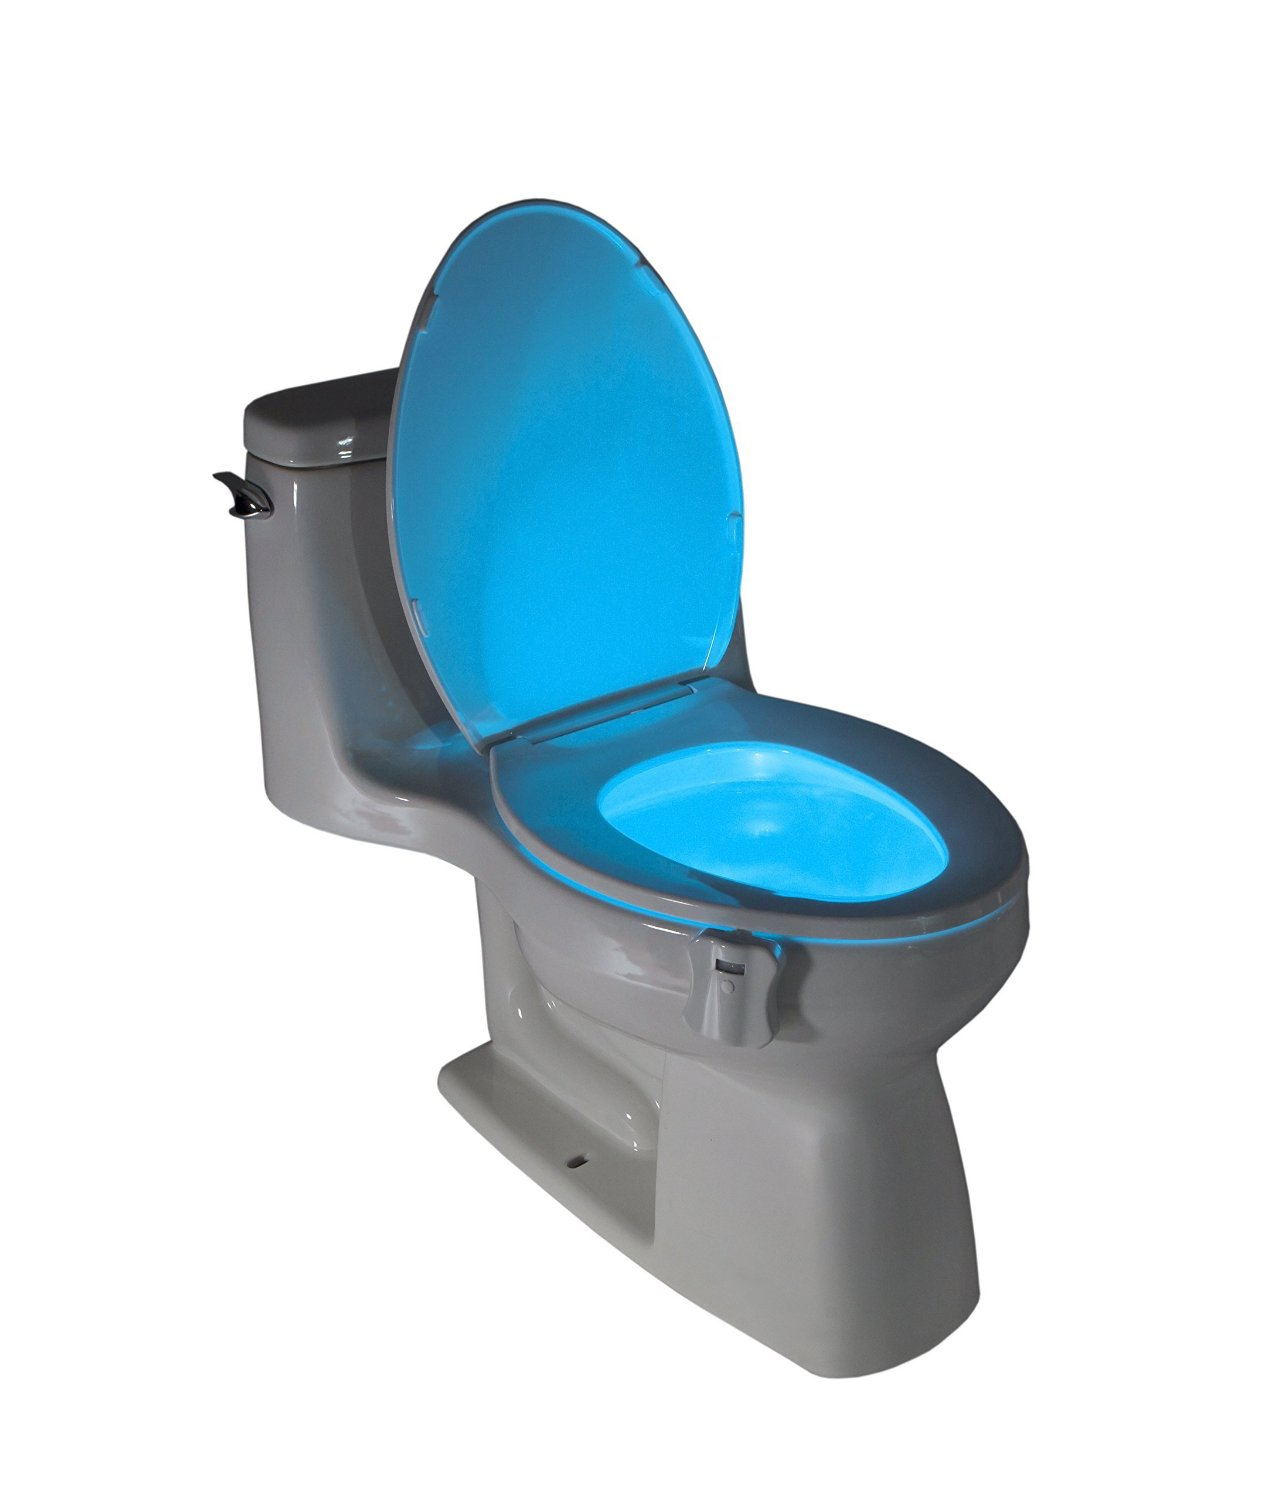 BlowBowl Toilet Light